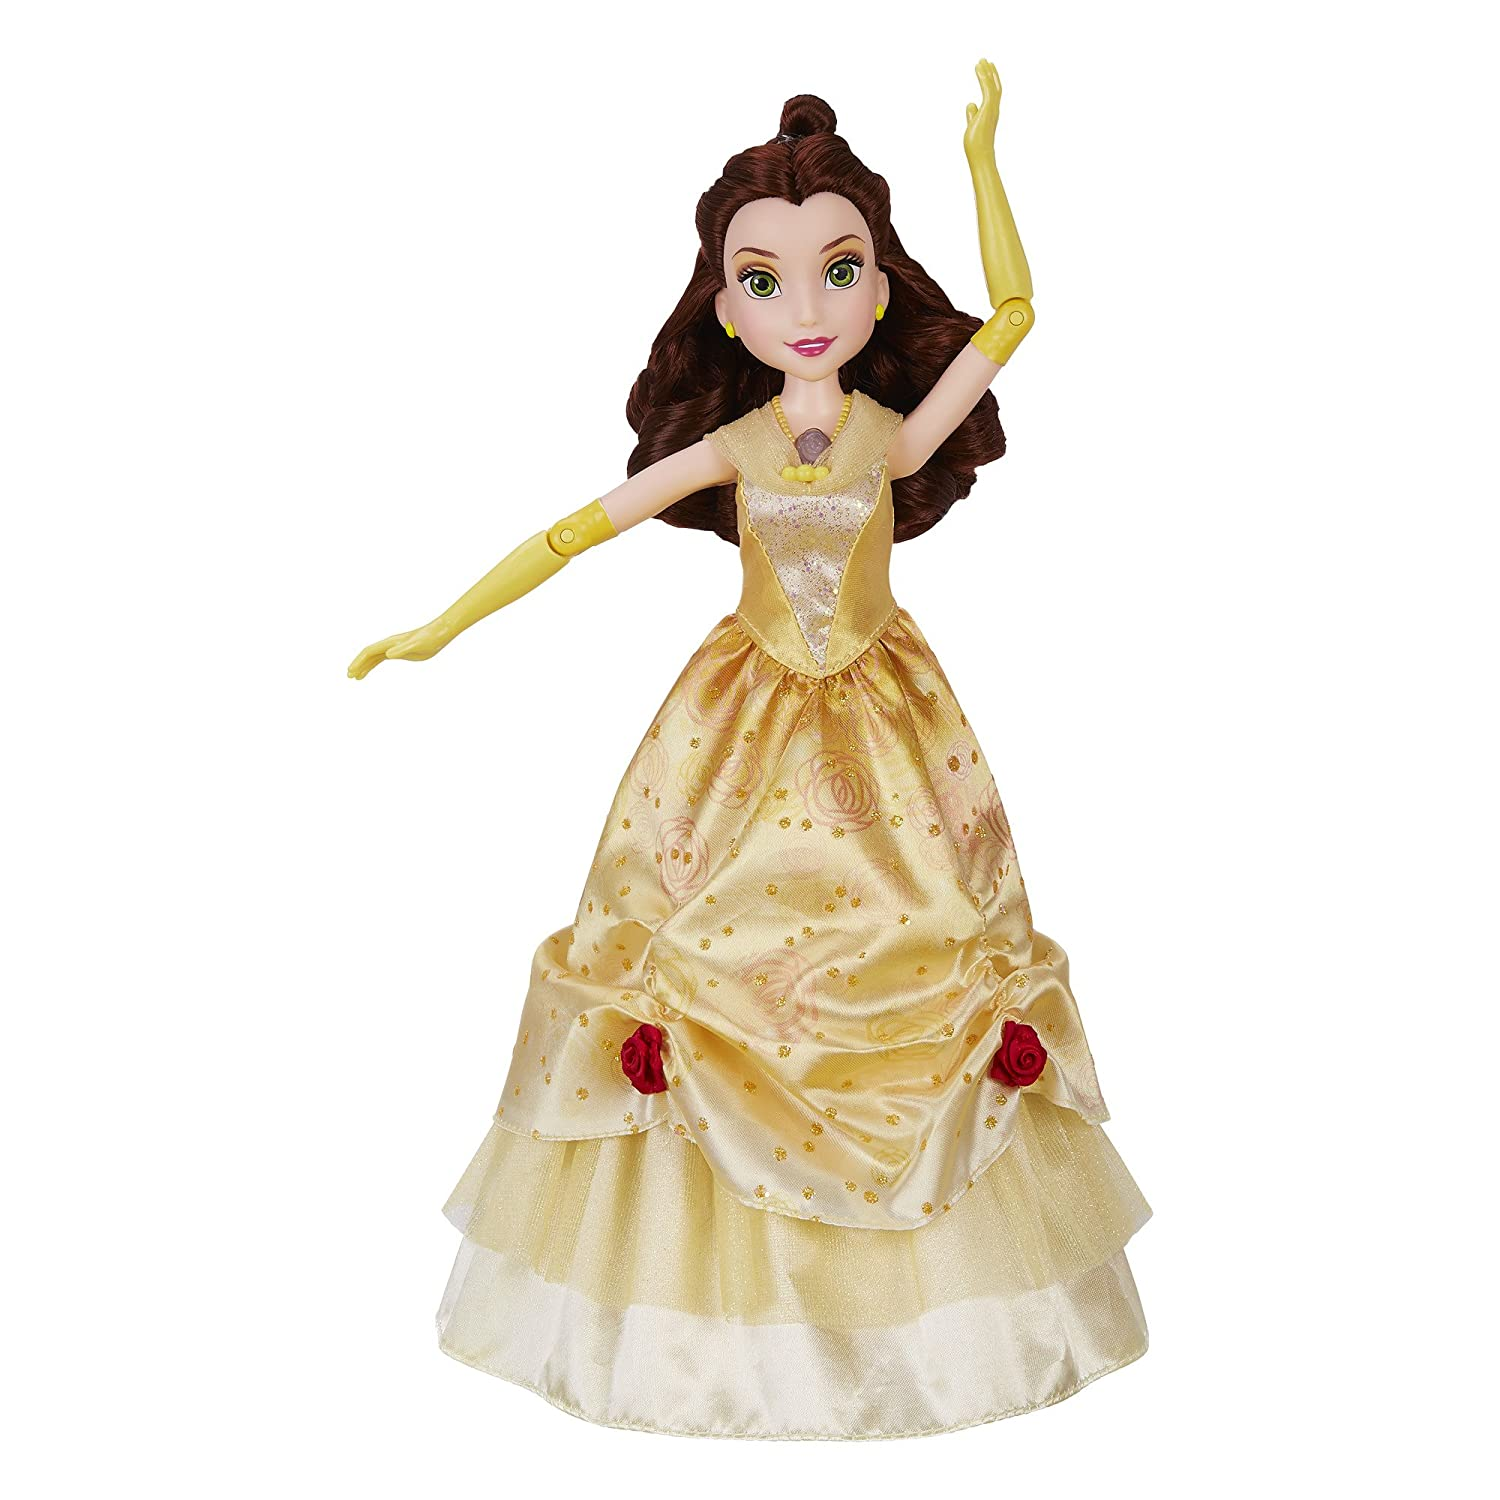 Princess Belle Gohana Recommended: What To Buy A 7 Year Old Girl For Christmas In 2019